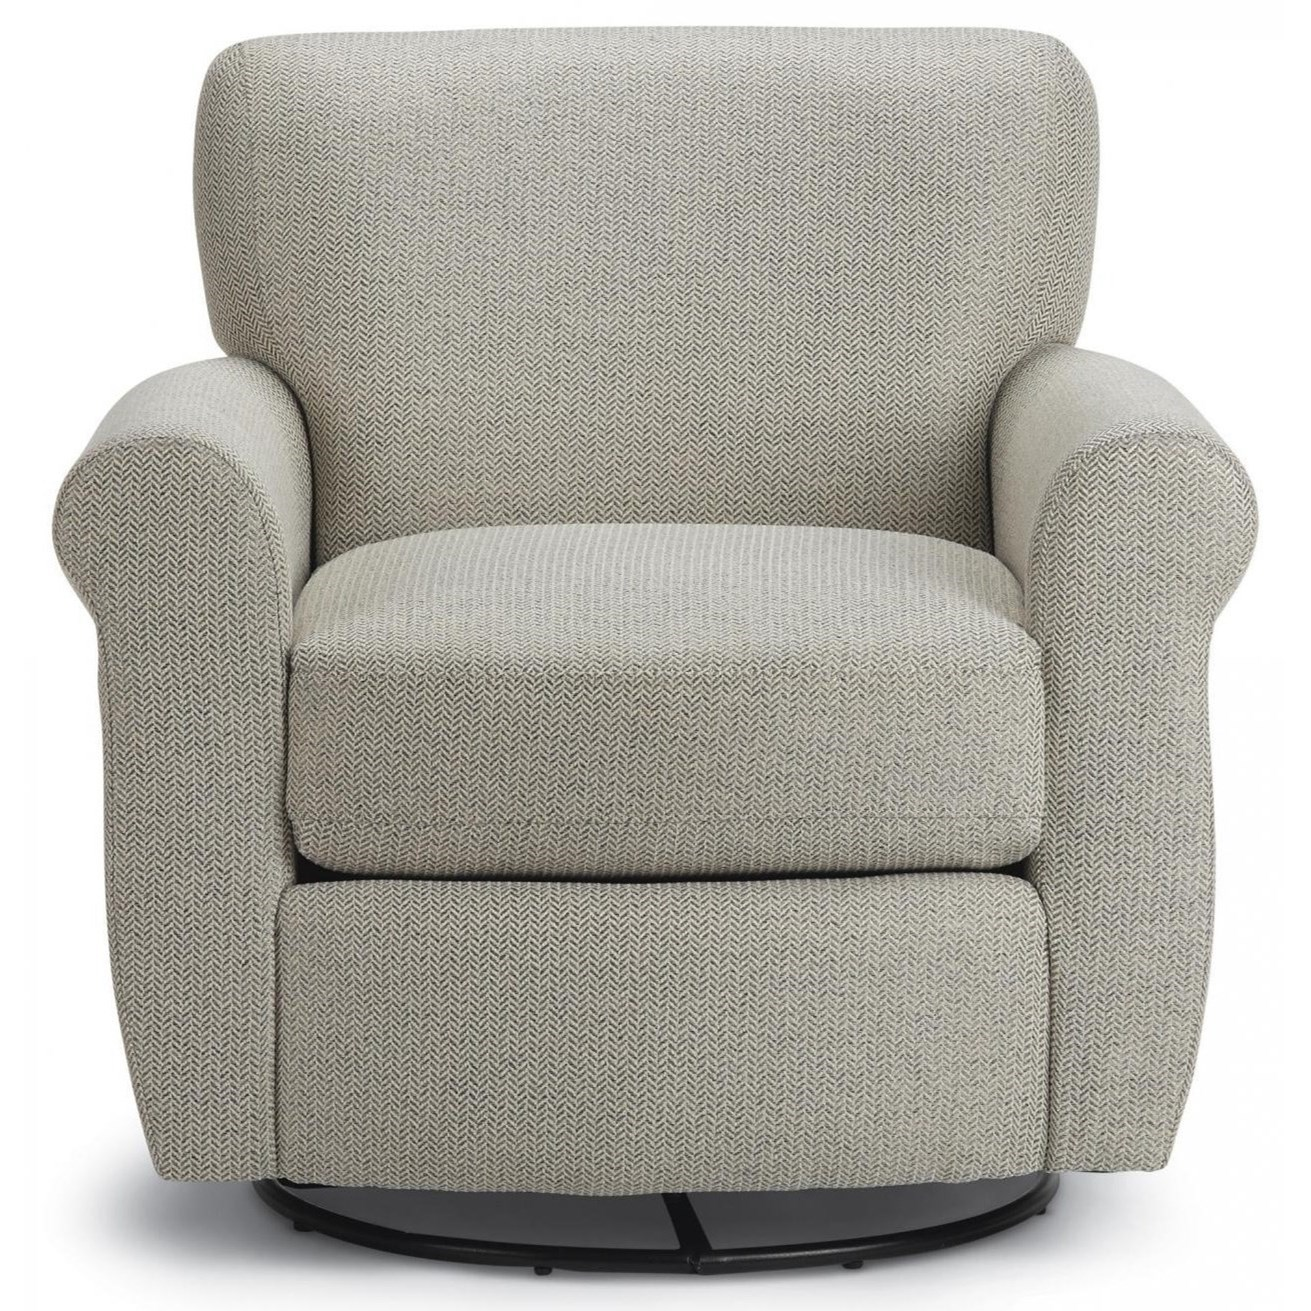 Gemily Swivel Glider Chair by Best Home Furnishings at Dunk & Bright Furniture